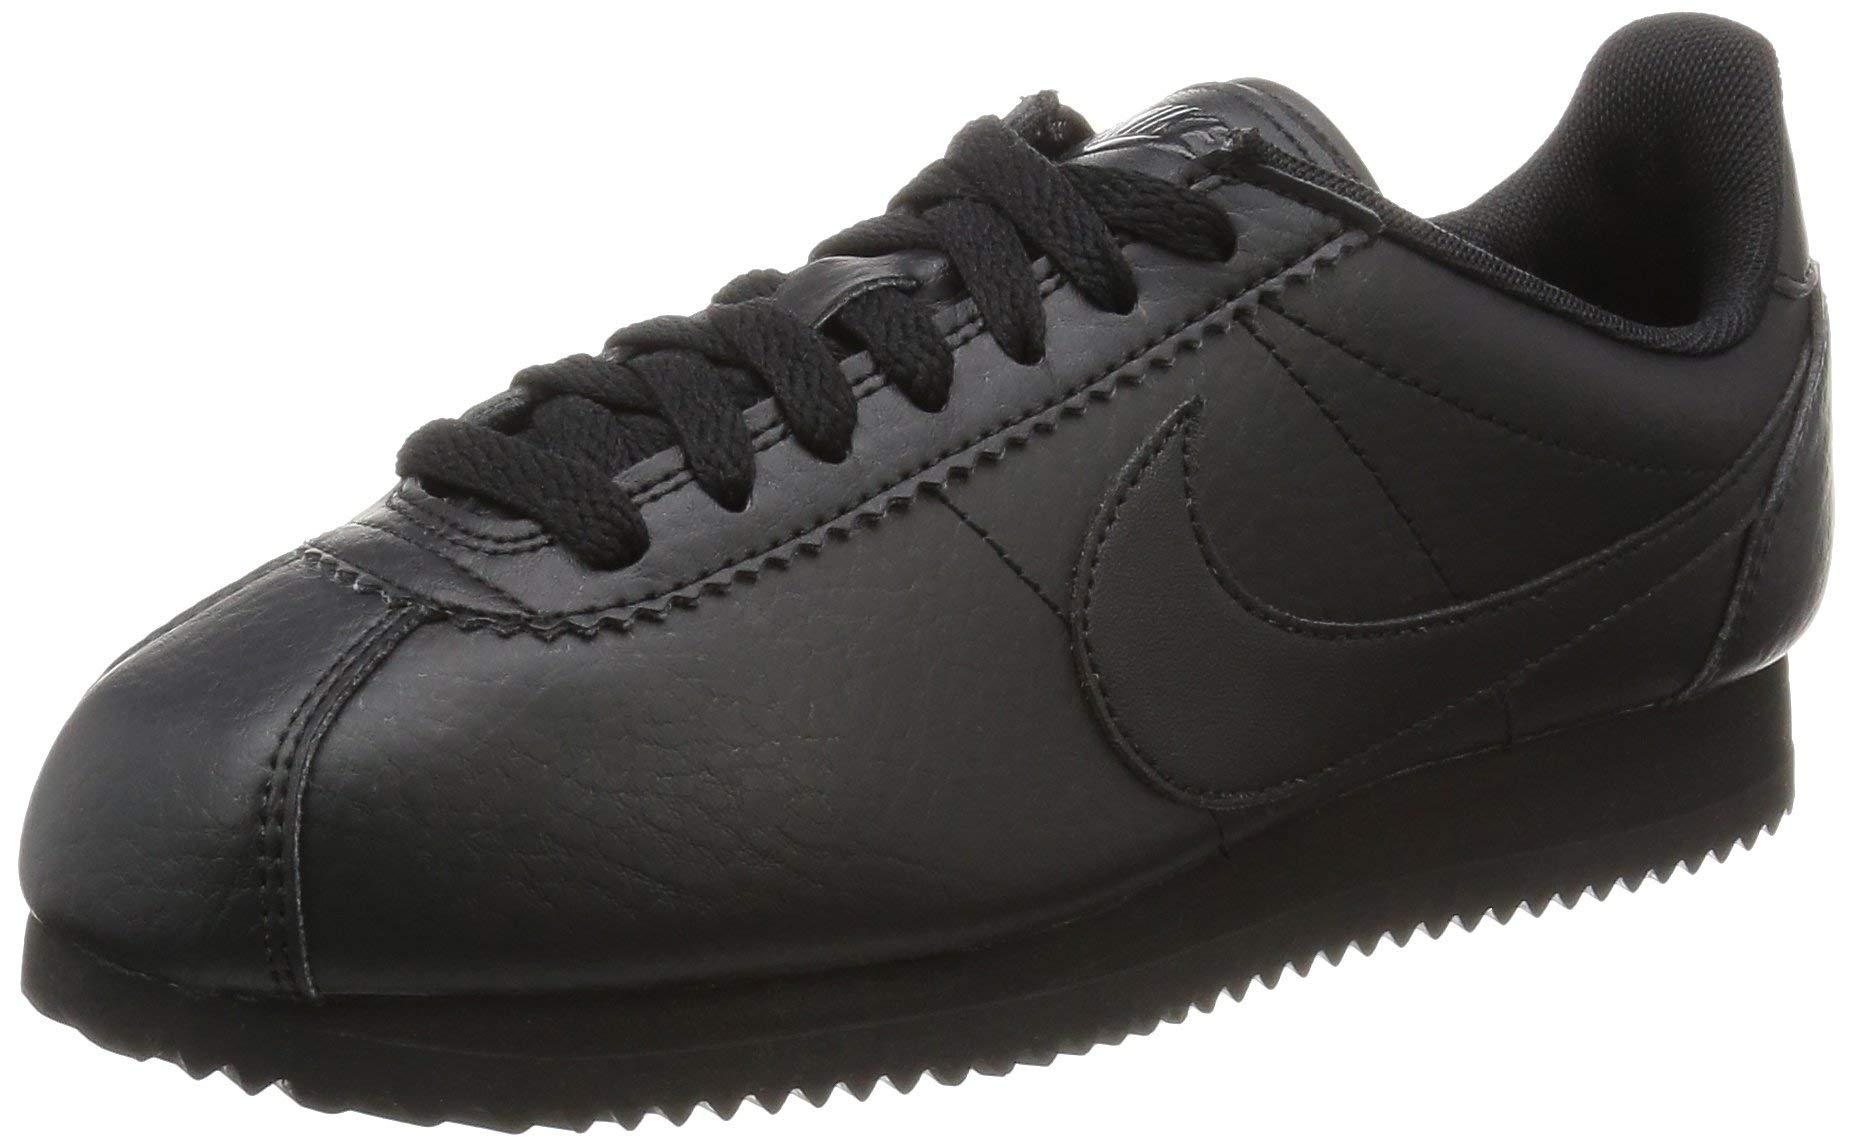 online store a3970 76815 Galleon - Nike Womens Classic Cortez Leather Black White White Casual Shoe  8.5 Women US